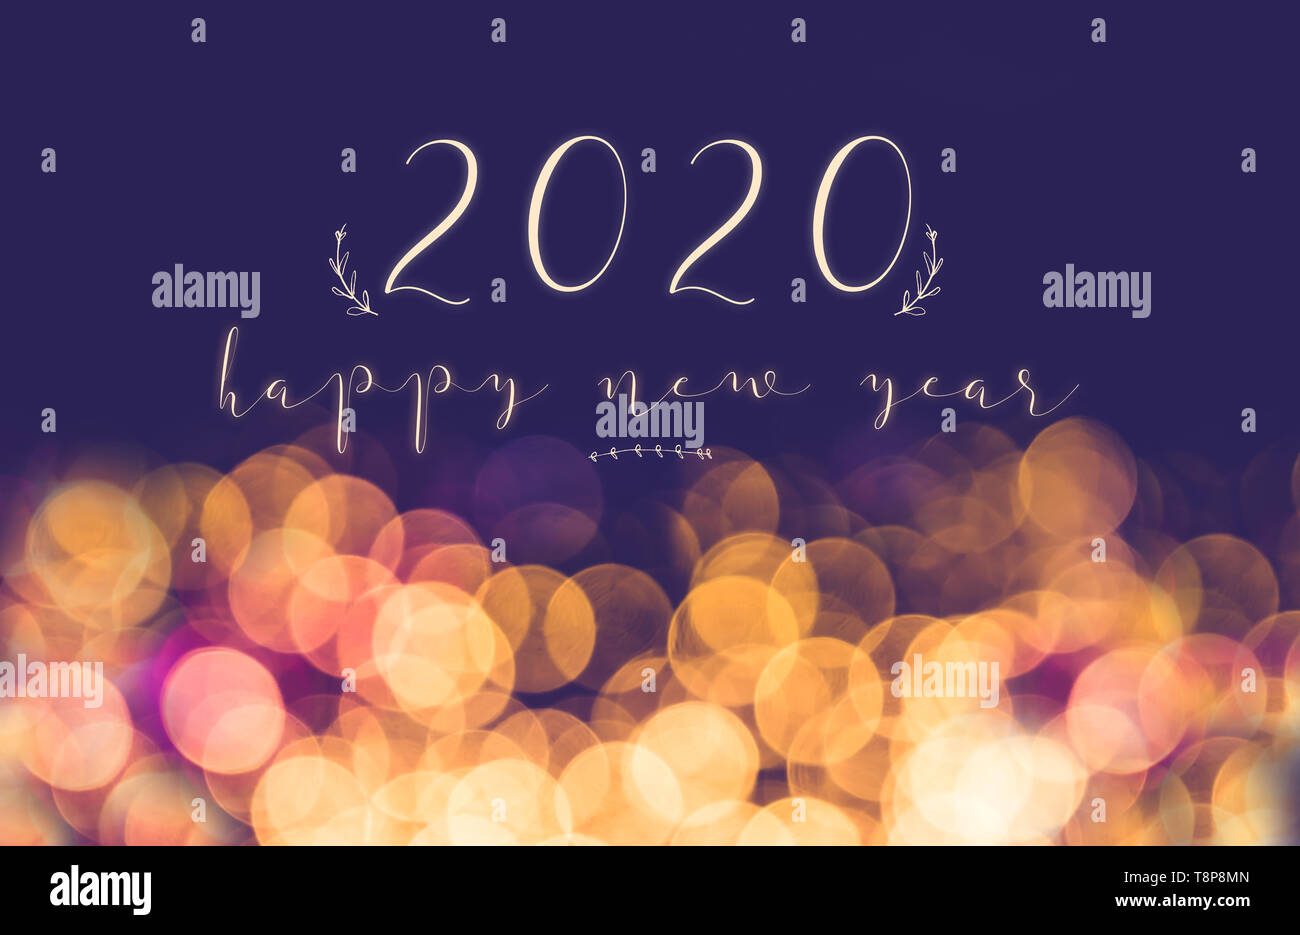 New year 2020 images with name and photo